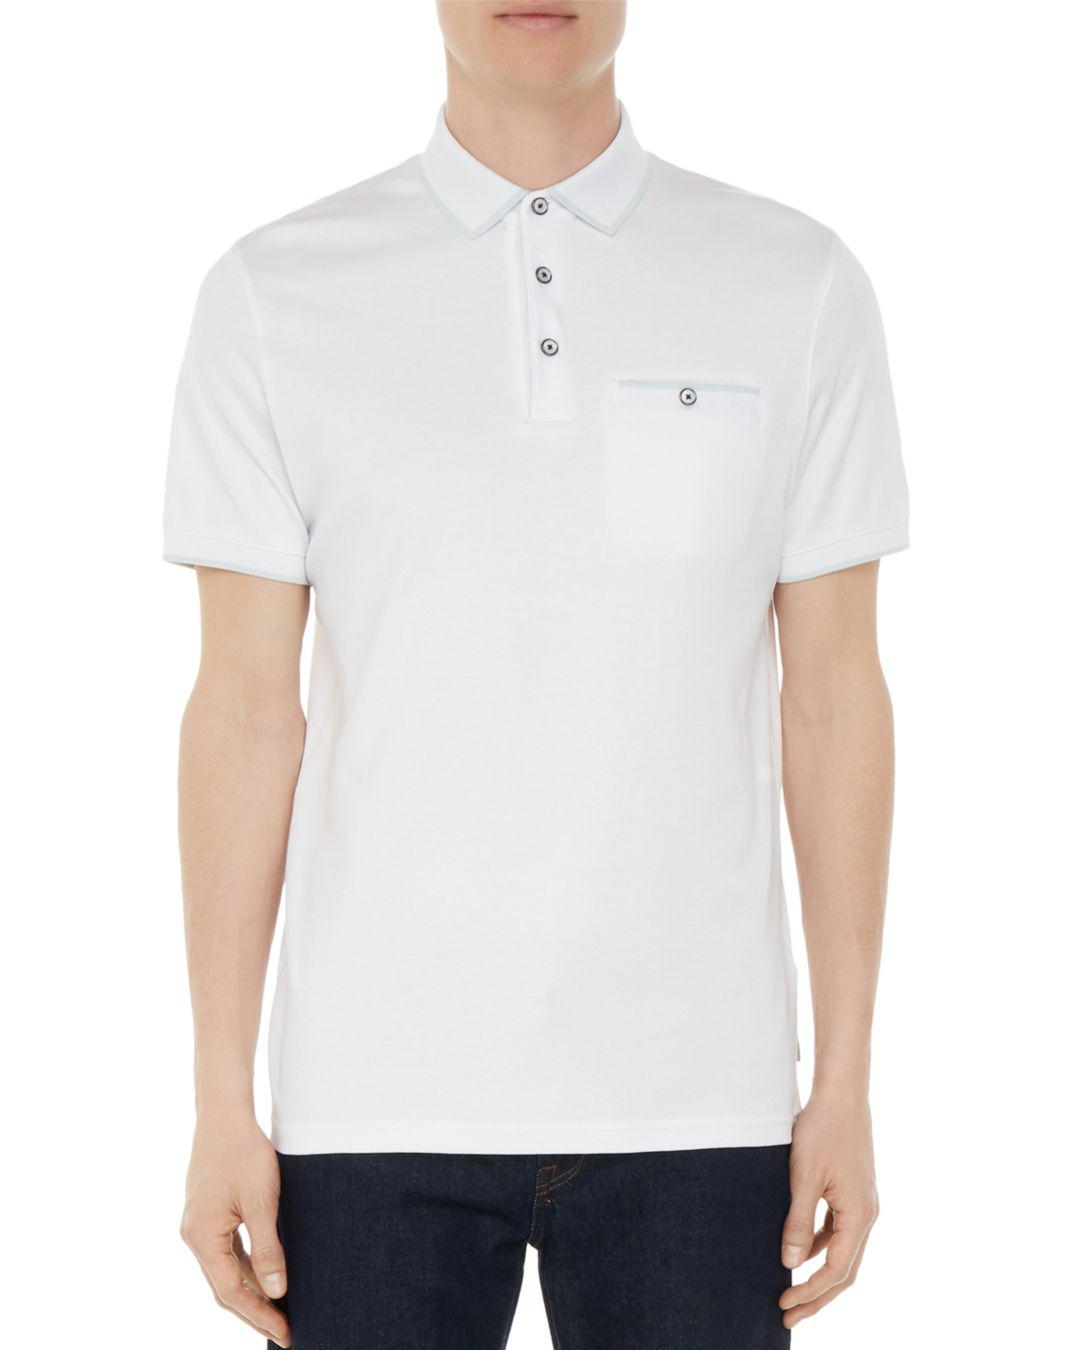 7a2d331fdd36d4 Lyst - Ted Baker Jelly Flat Knit Regular Fit Polo in White for Men